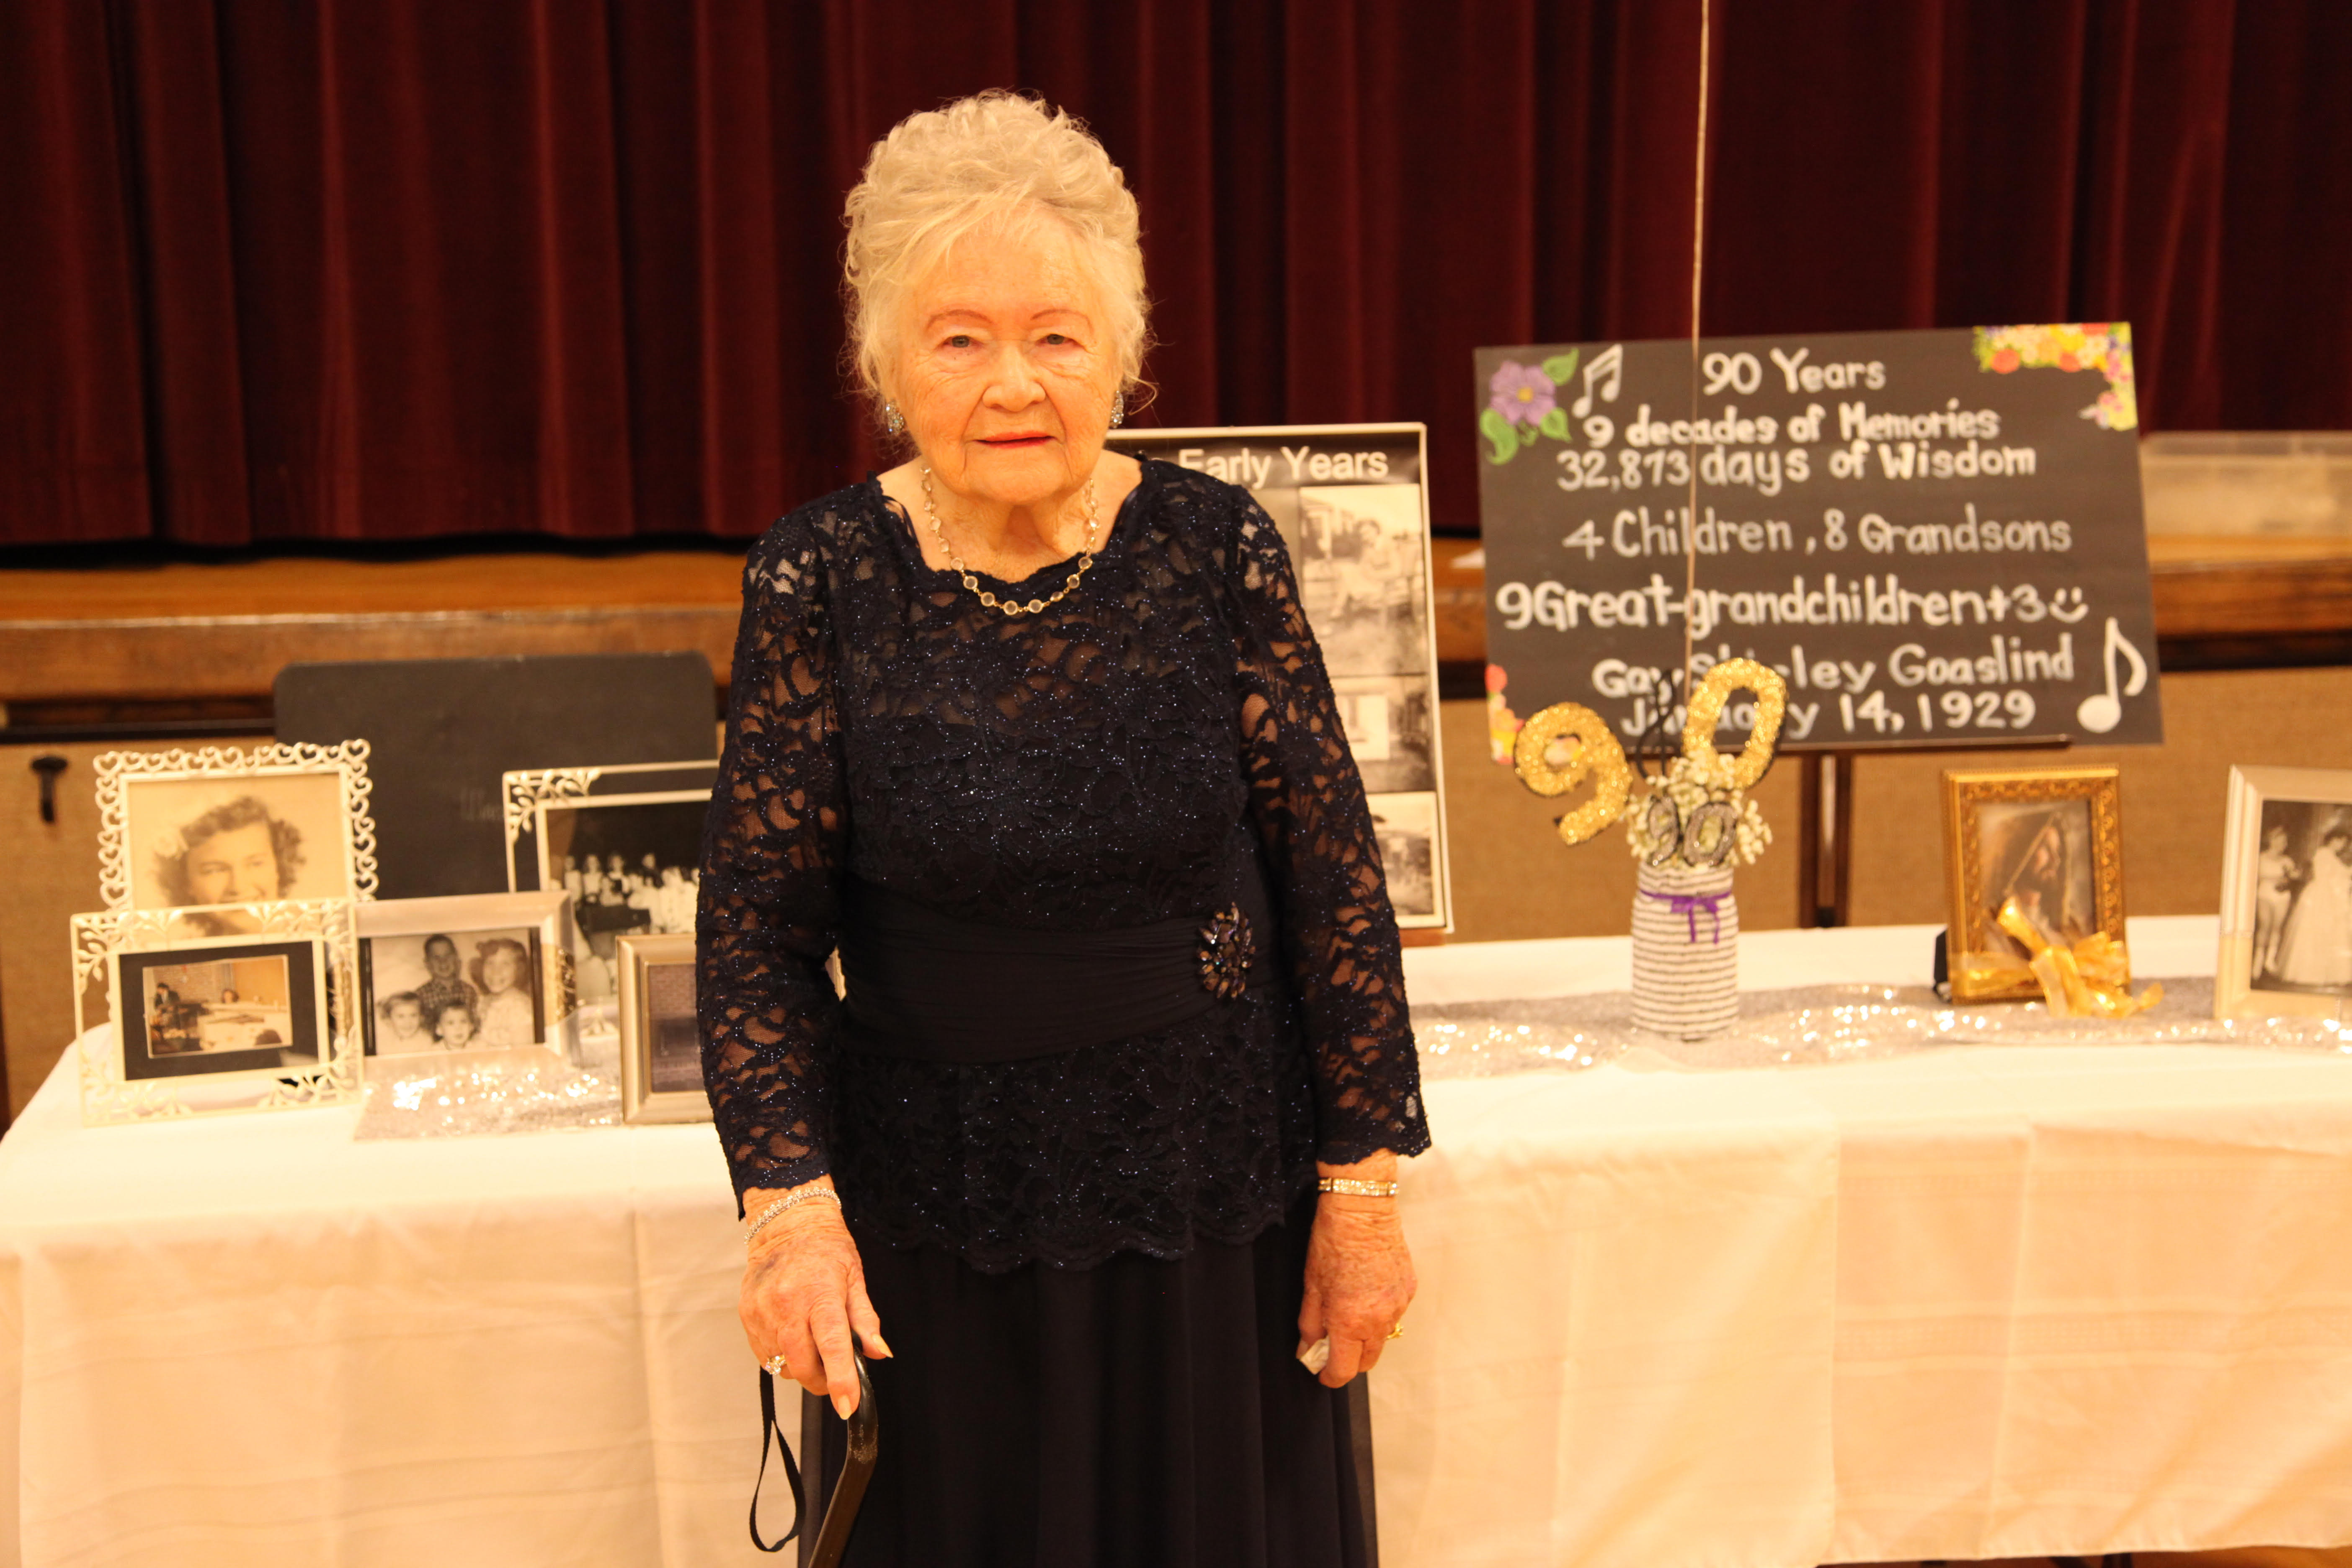 Gay Goaslind poses for a picture at her 90th birthday party on Jan. 14, 2019.